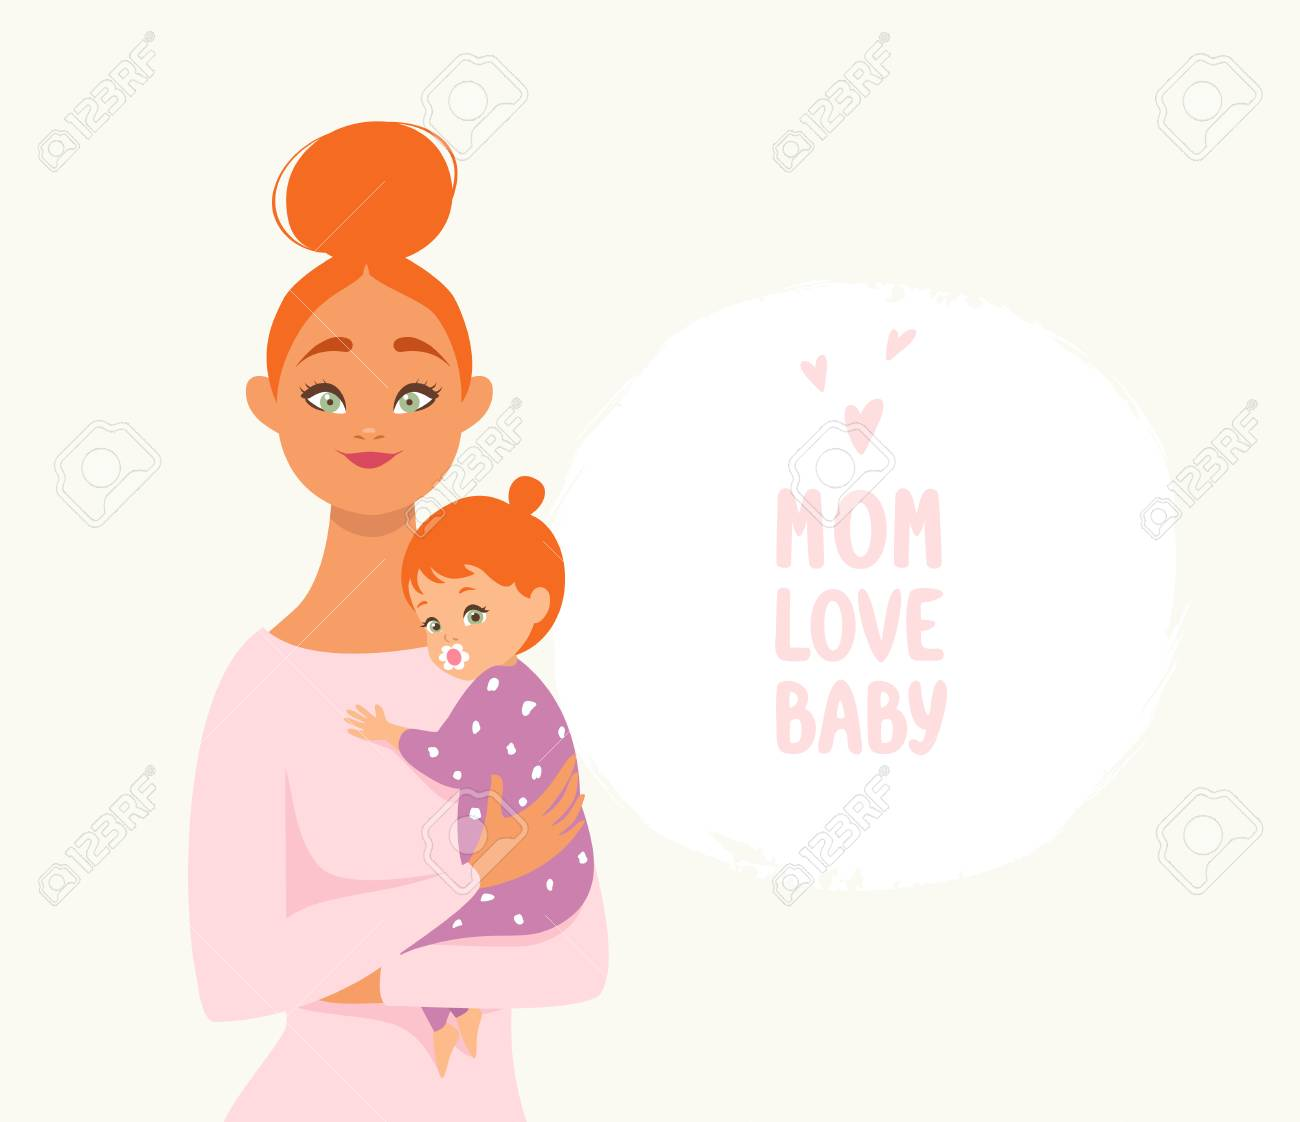 Beautiful And Cute Cartoon Mother With Baby Happy Motherhood Royalty Free Cliparts Vectors And Stock Illustration Image 125227554